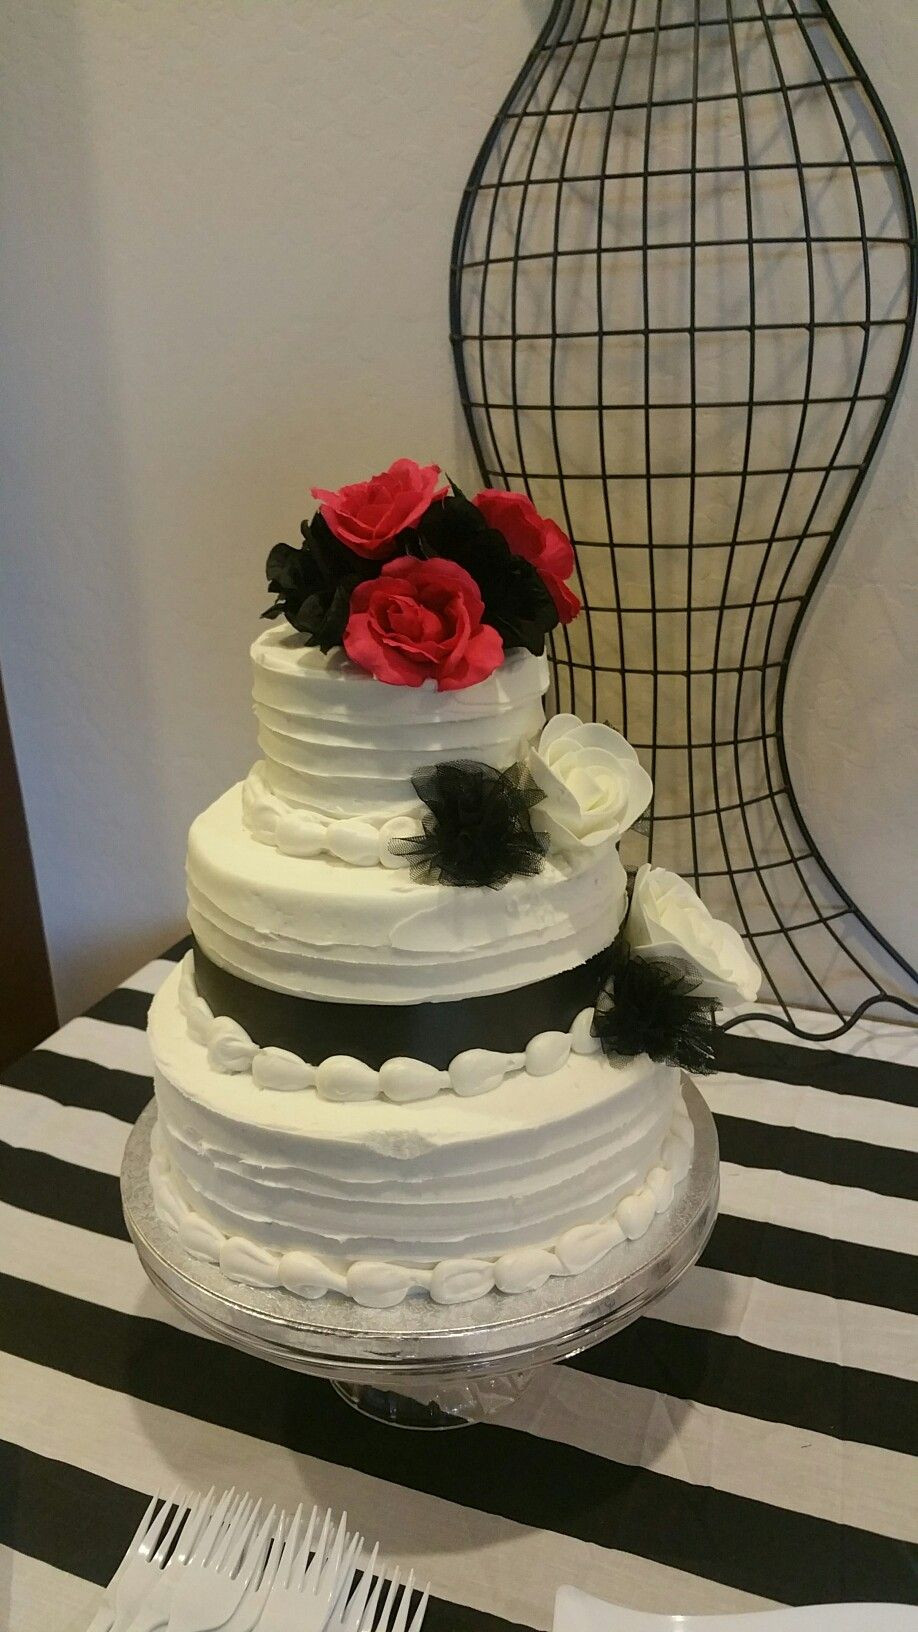 Wedding Cakes From Sam'S Club  Sam s club 3 tier cake for only $65 I like the texture to